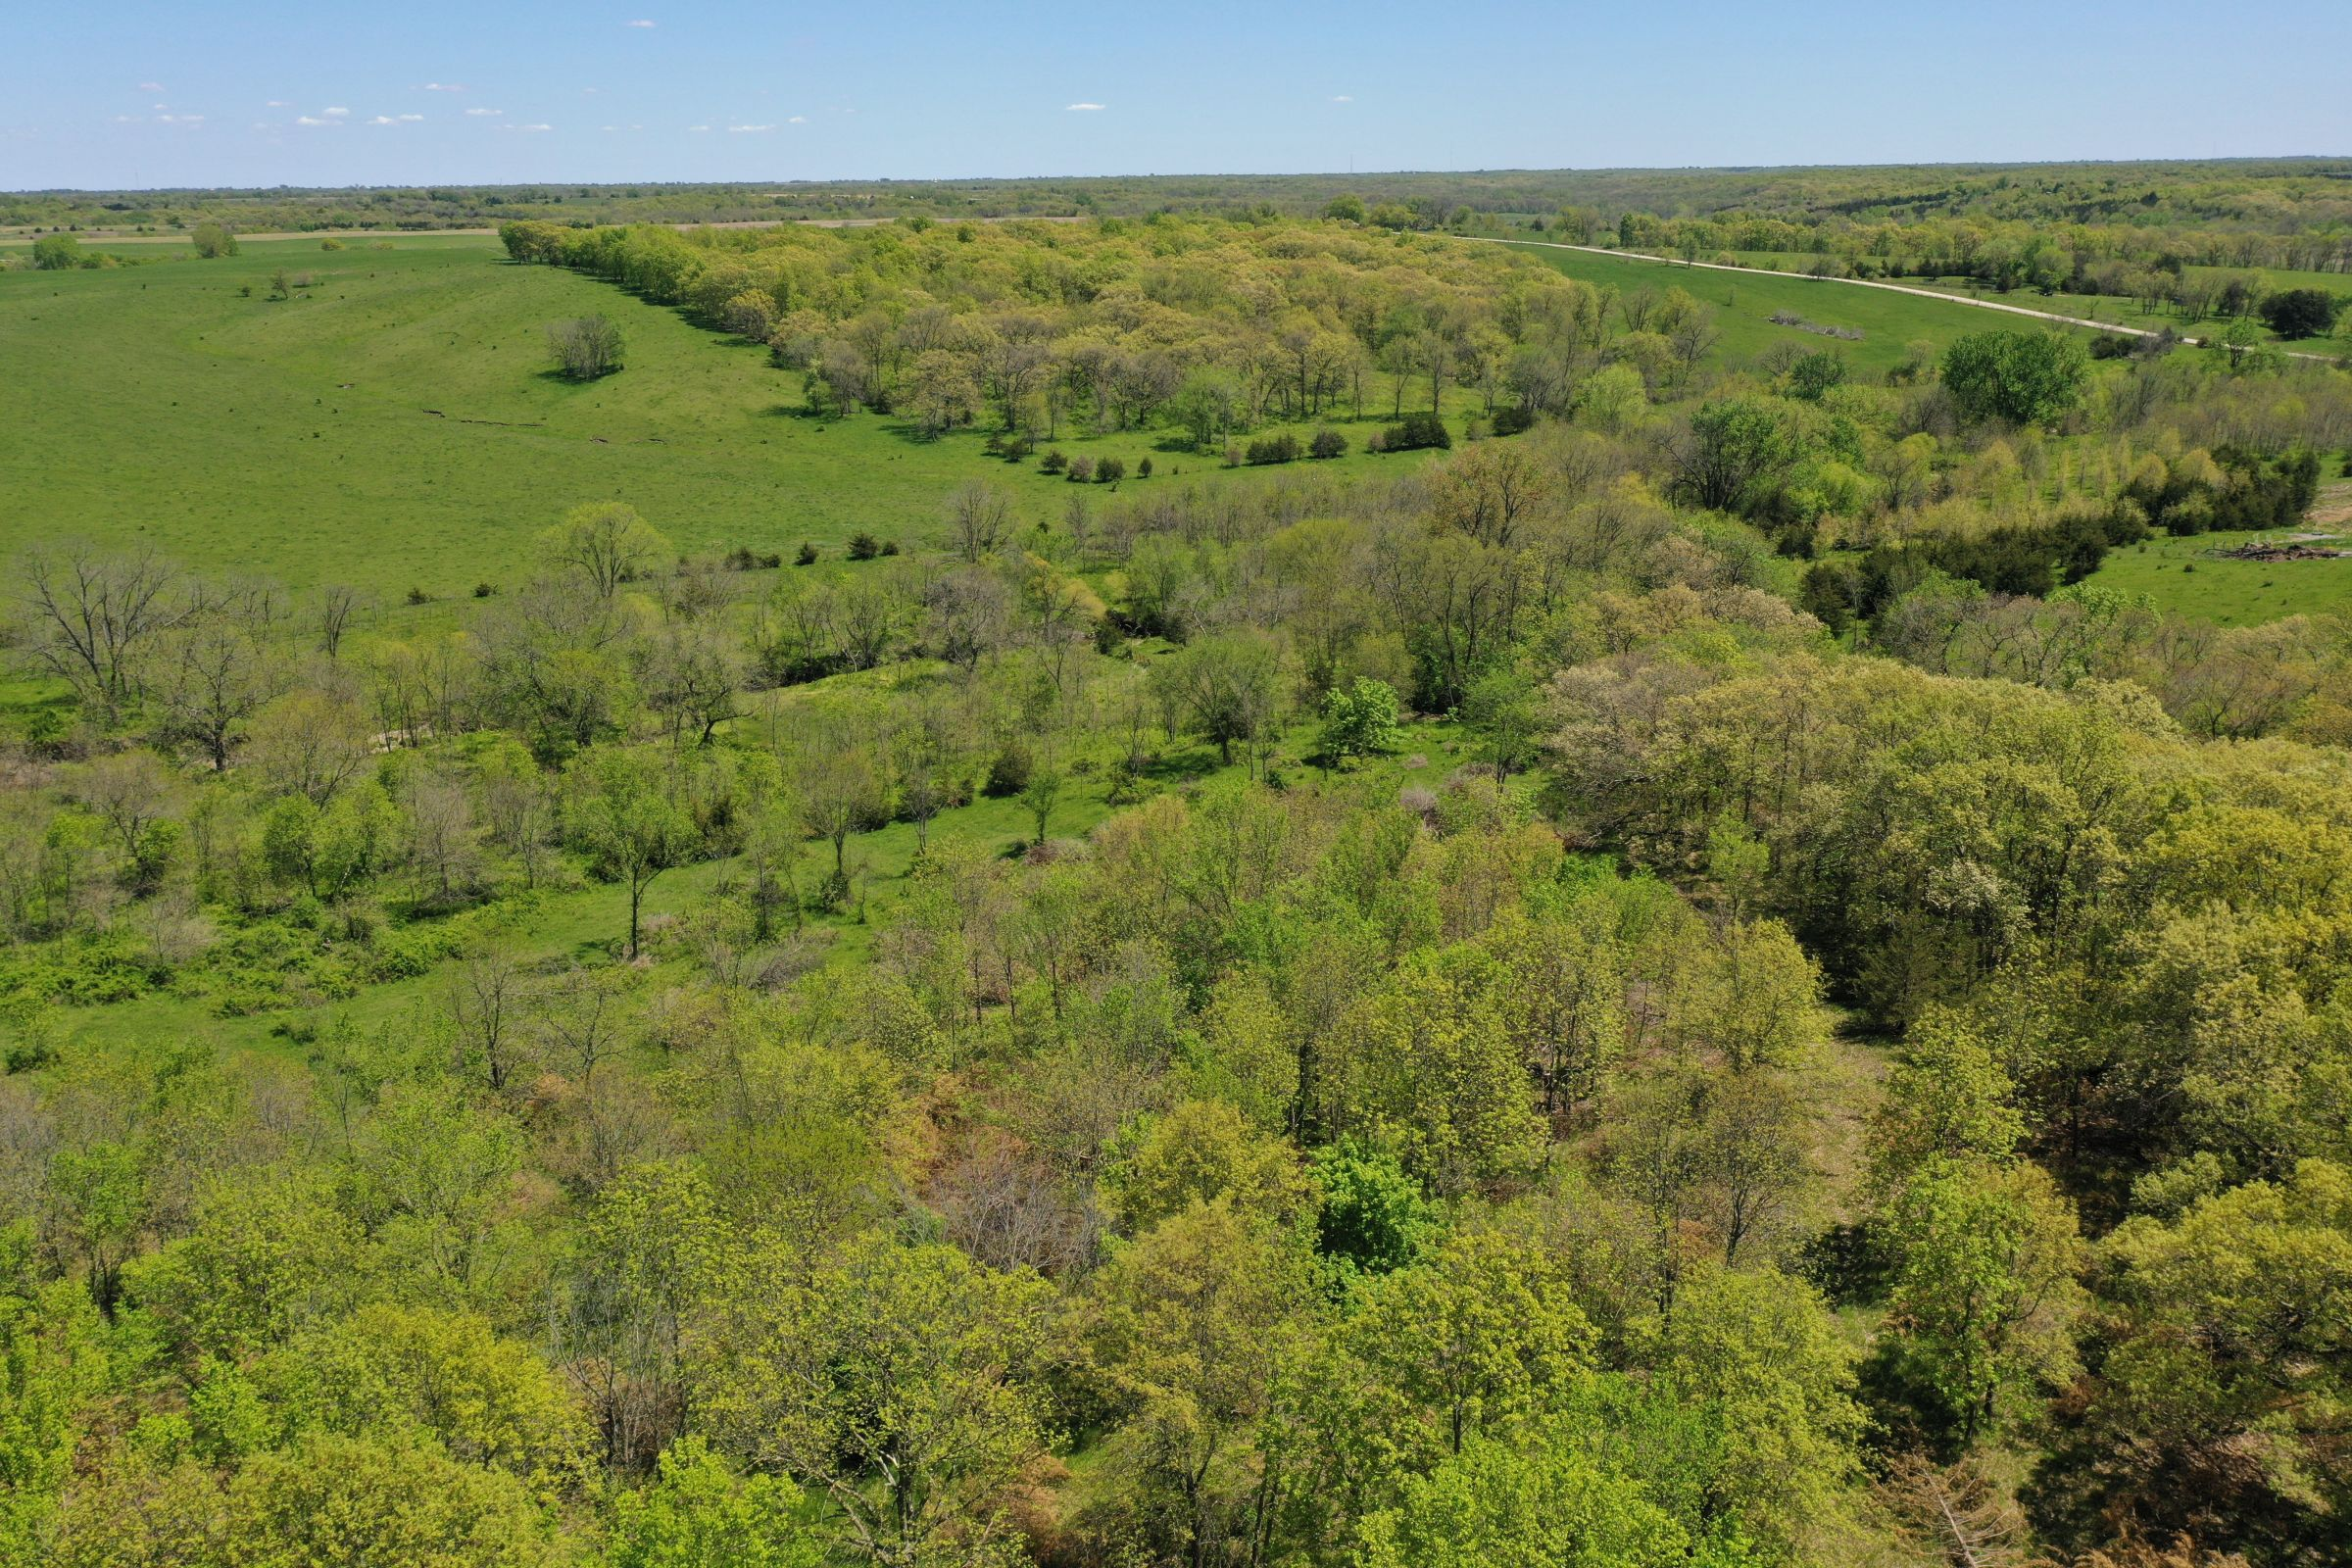 land-decatur-county-iowa-99-acres-listing-number-15525-1-2021-05-14-174317.JPG